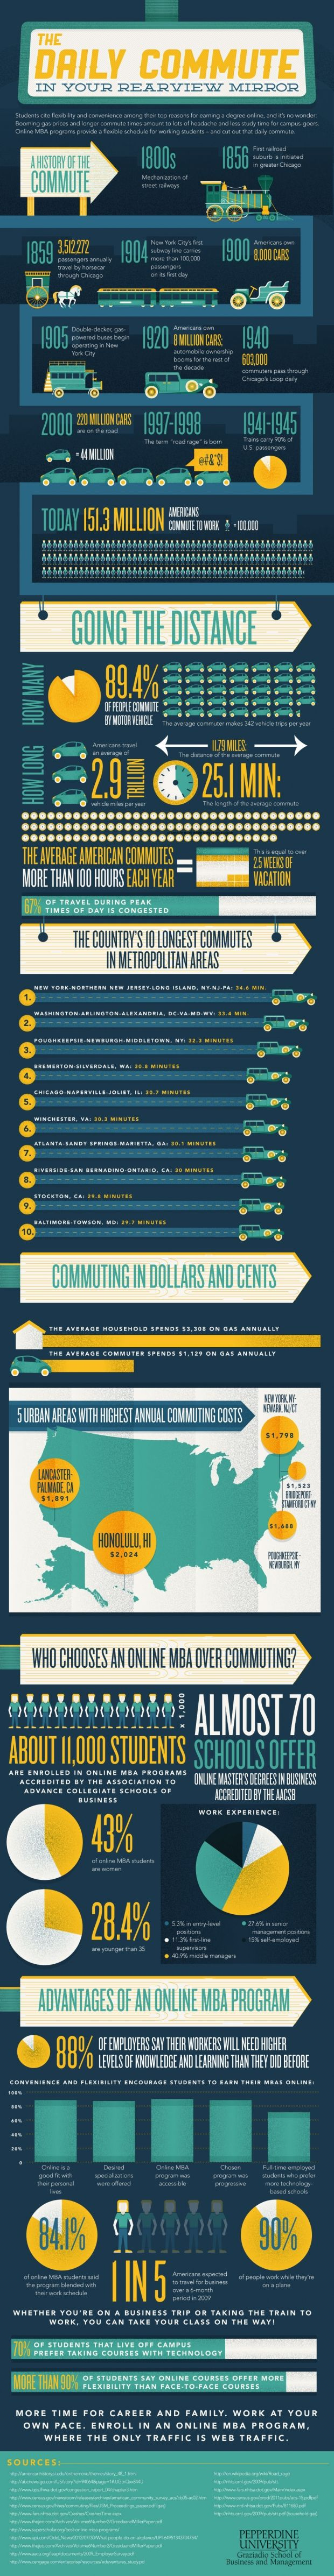 Infographic of the day the daily commute in your rear view mirror